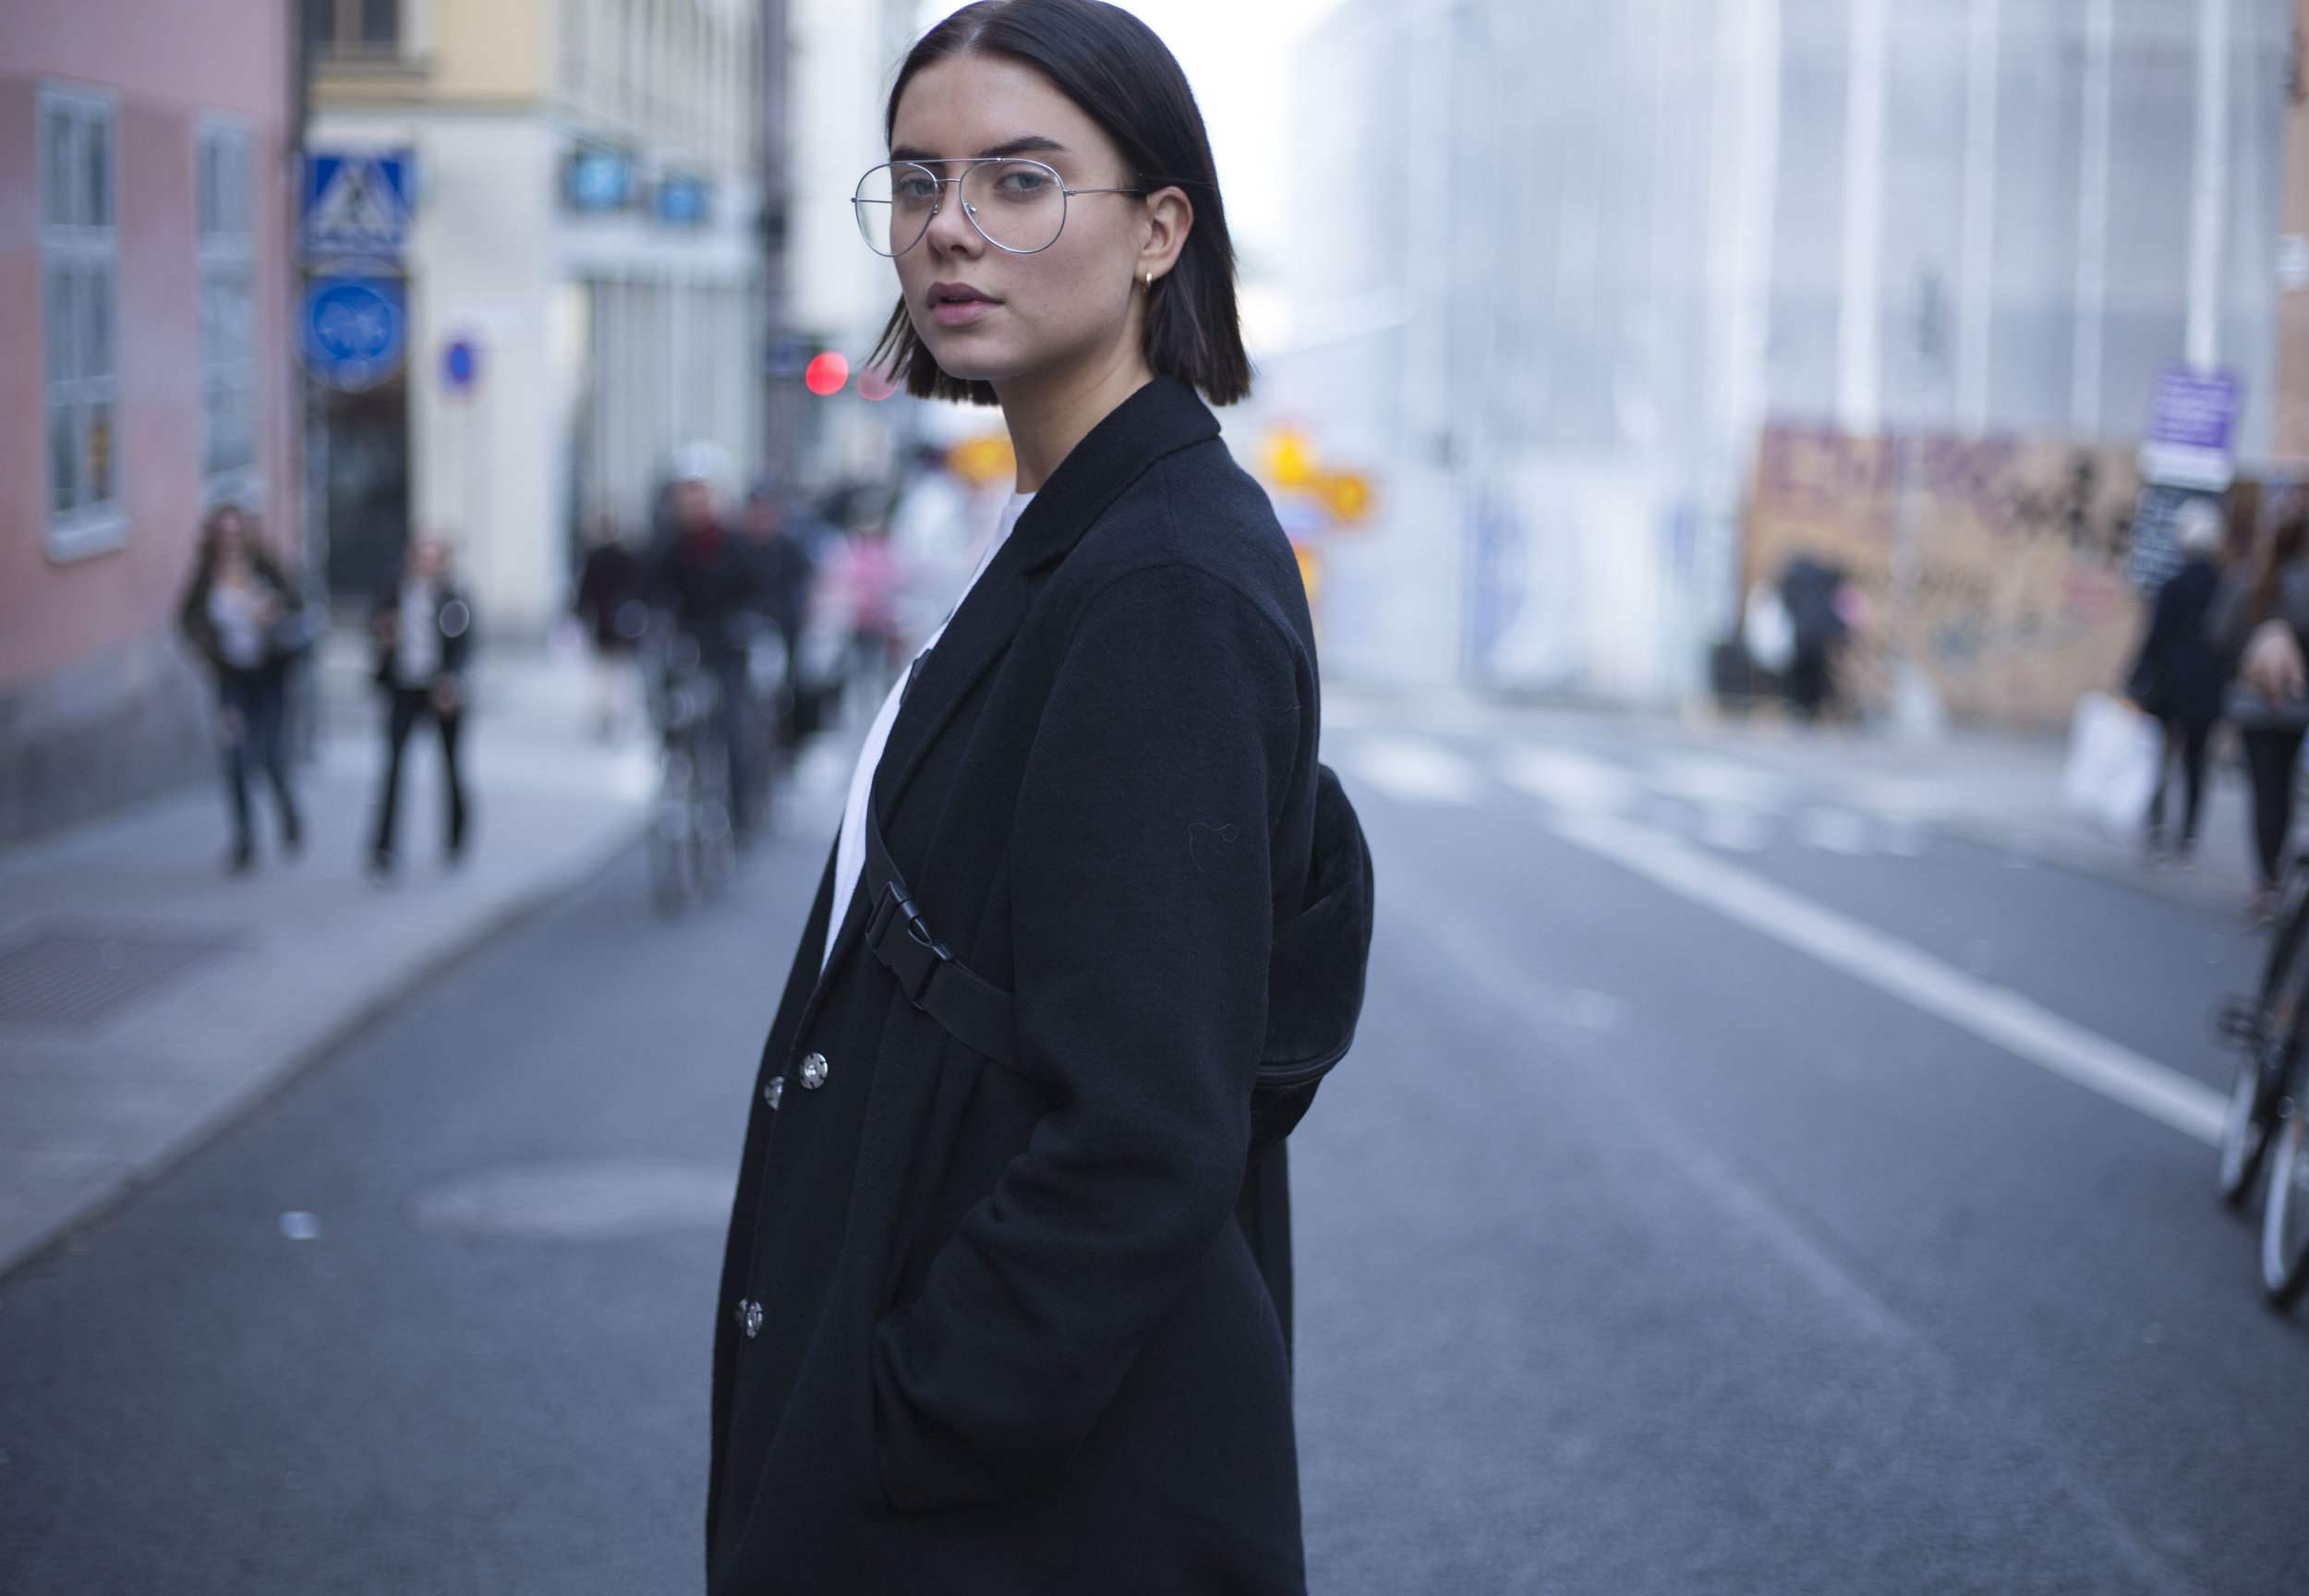 Stunning streetstyle on the streets of Stockholm